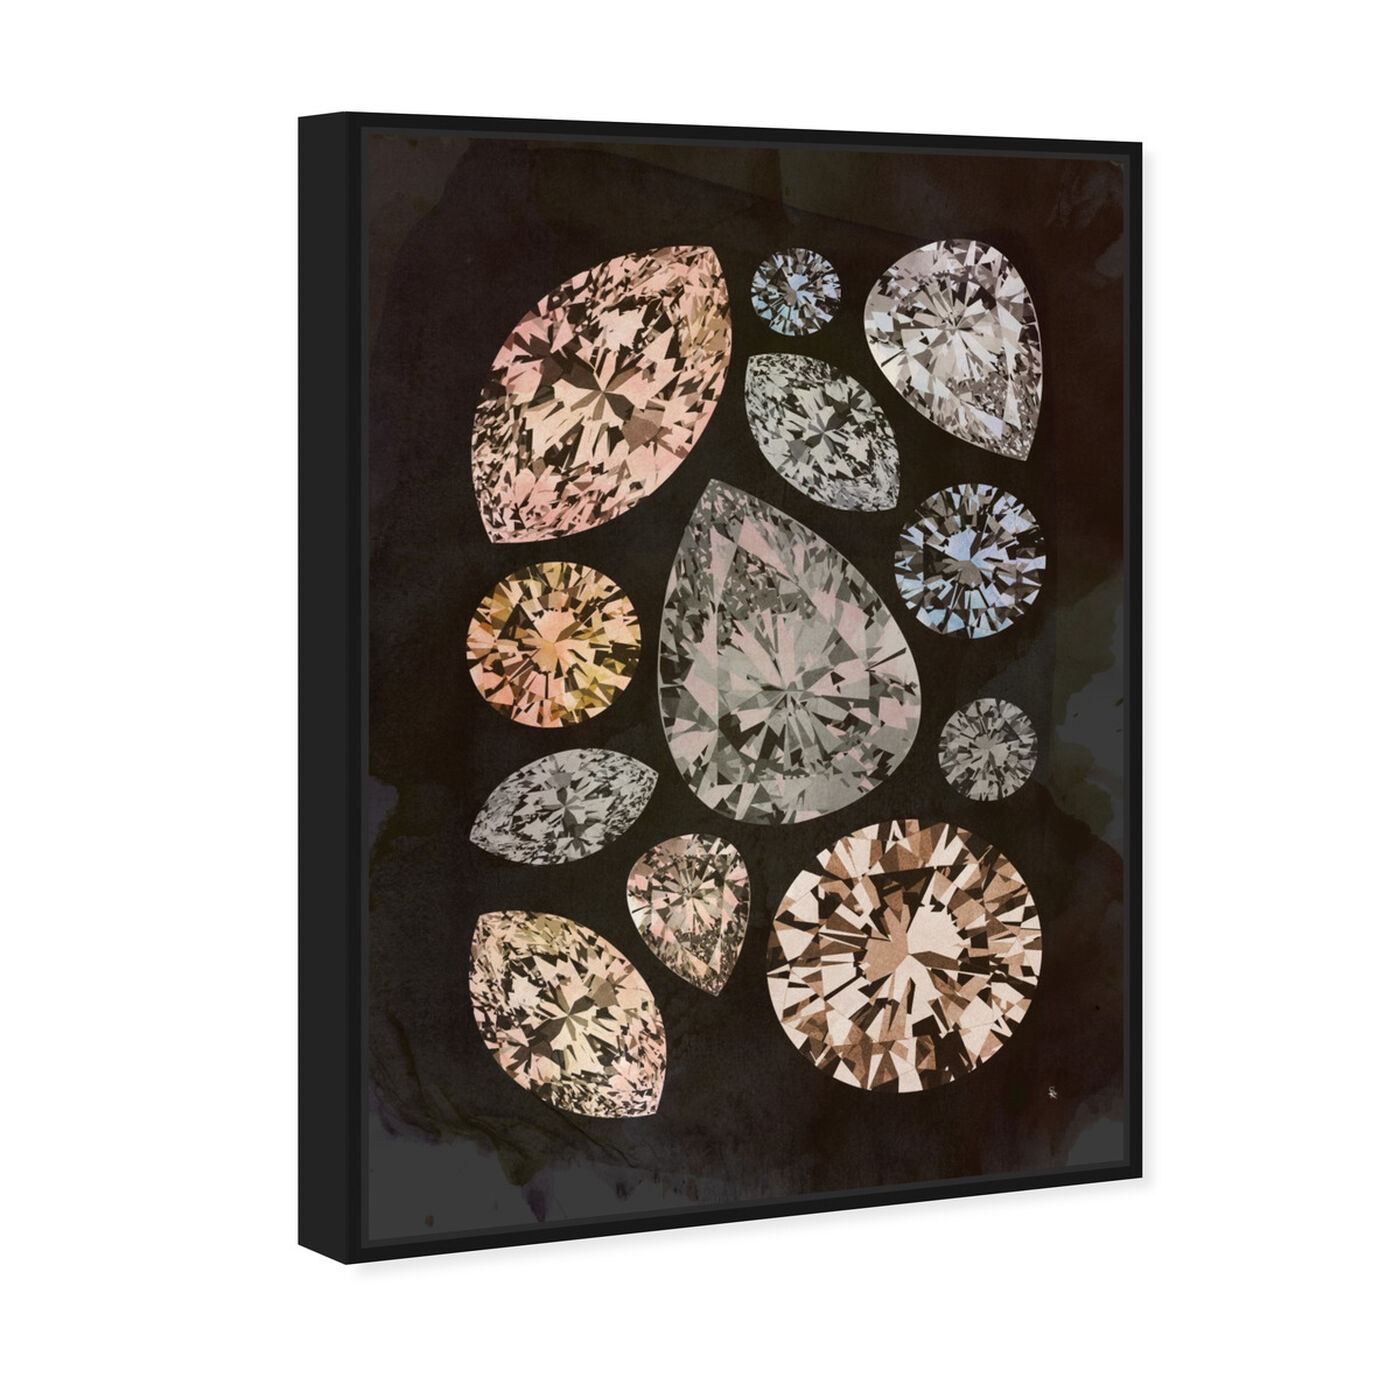 Angled view of Autumn Stones featuring abstract and crystals art.